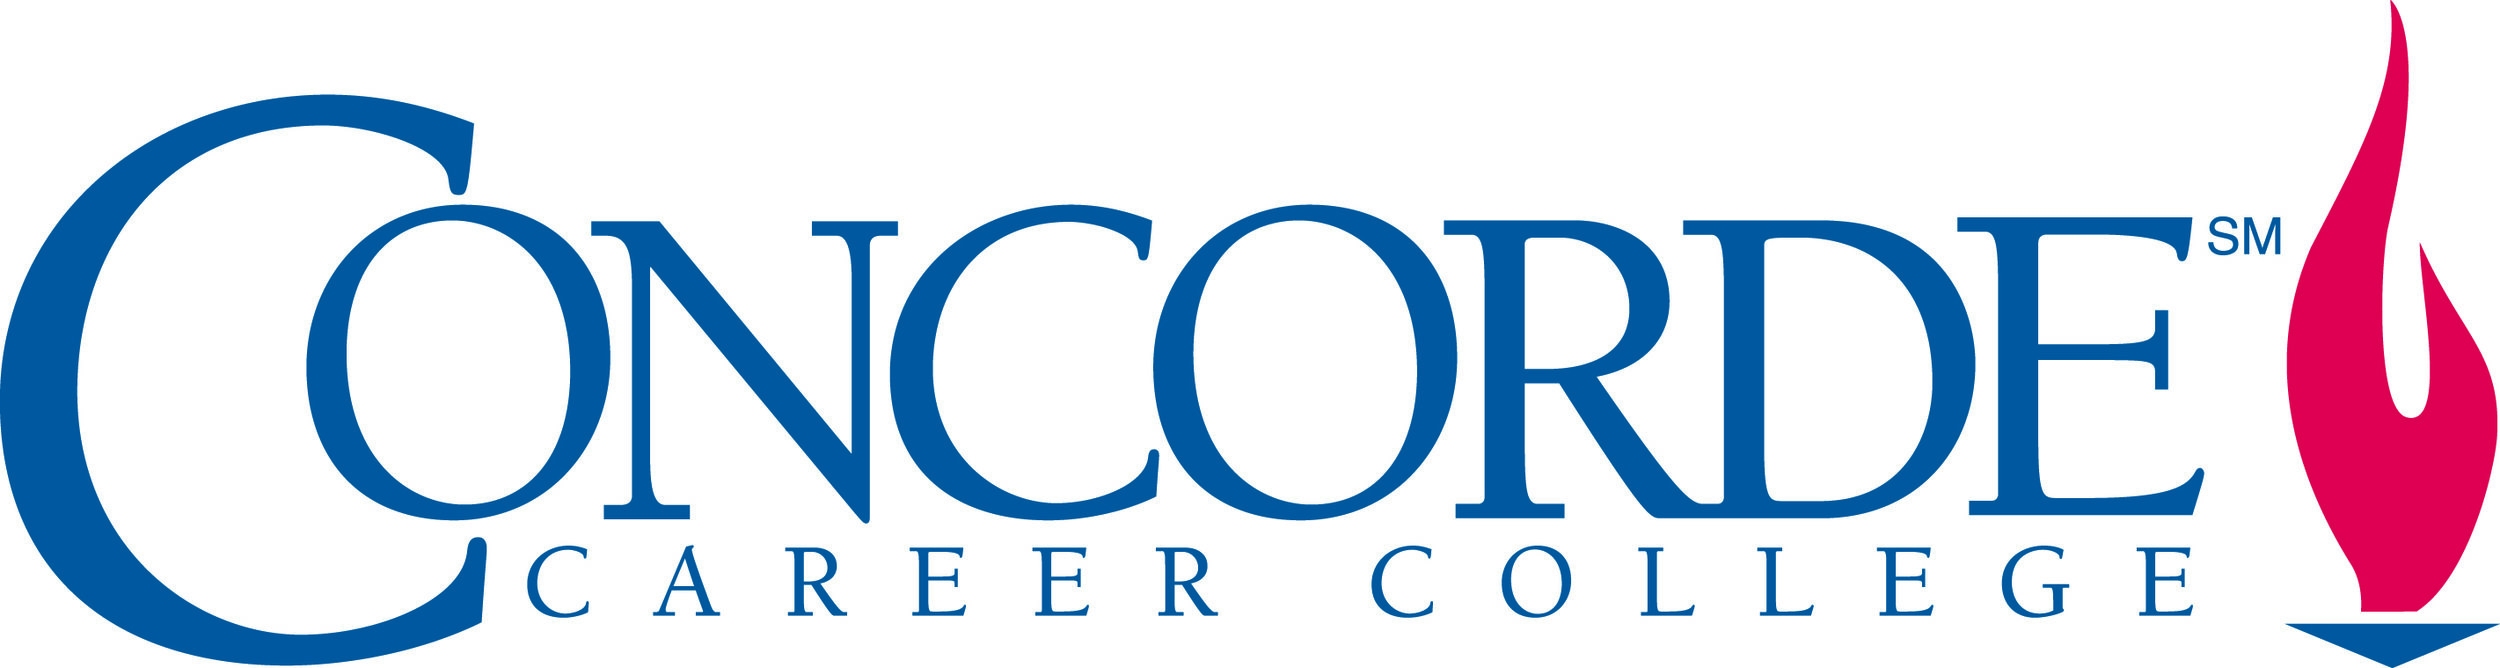 Concorde Career College.jpg